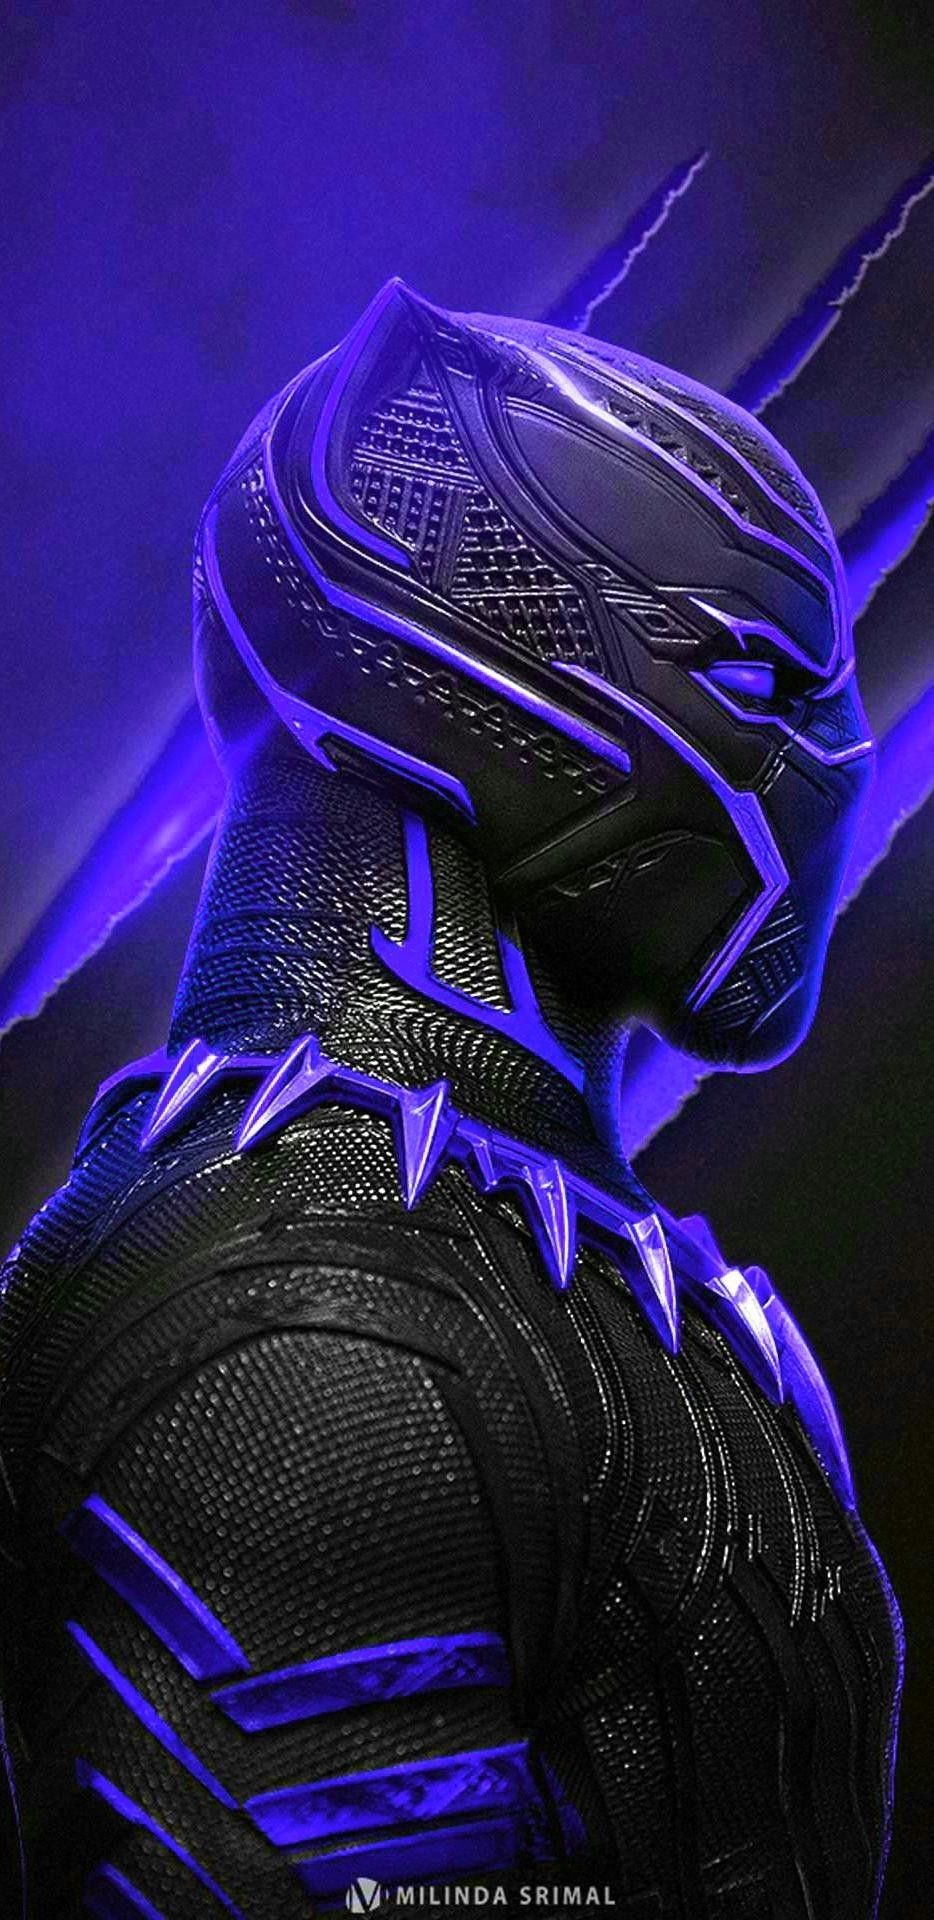 Pin By Mario On Wallpapers Hd Black Panther Marvel Black Panther Art Black Panther Hd Wallpaper